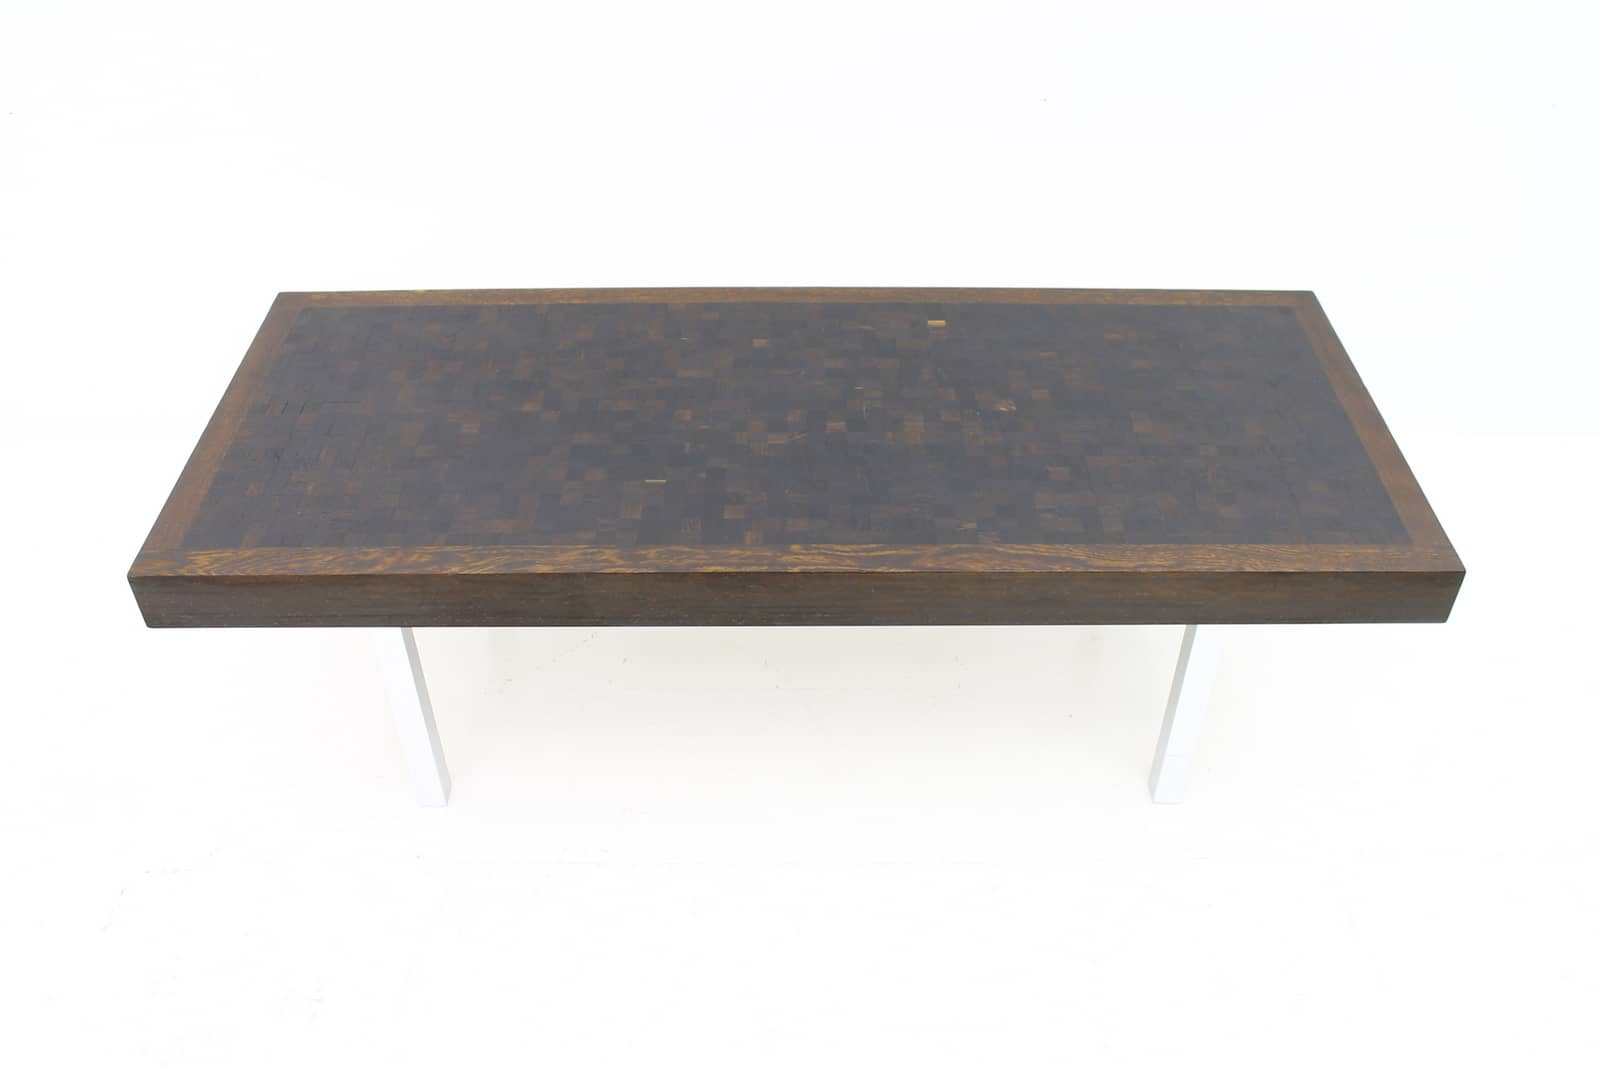 Rare Bench or Table by Dieter Wäckerlin for Idealheim, Switzerland